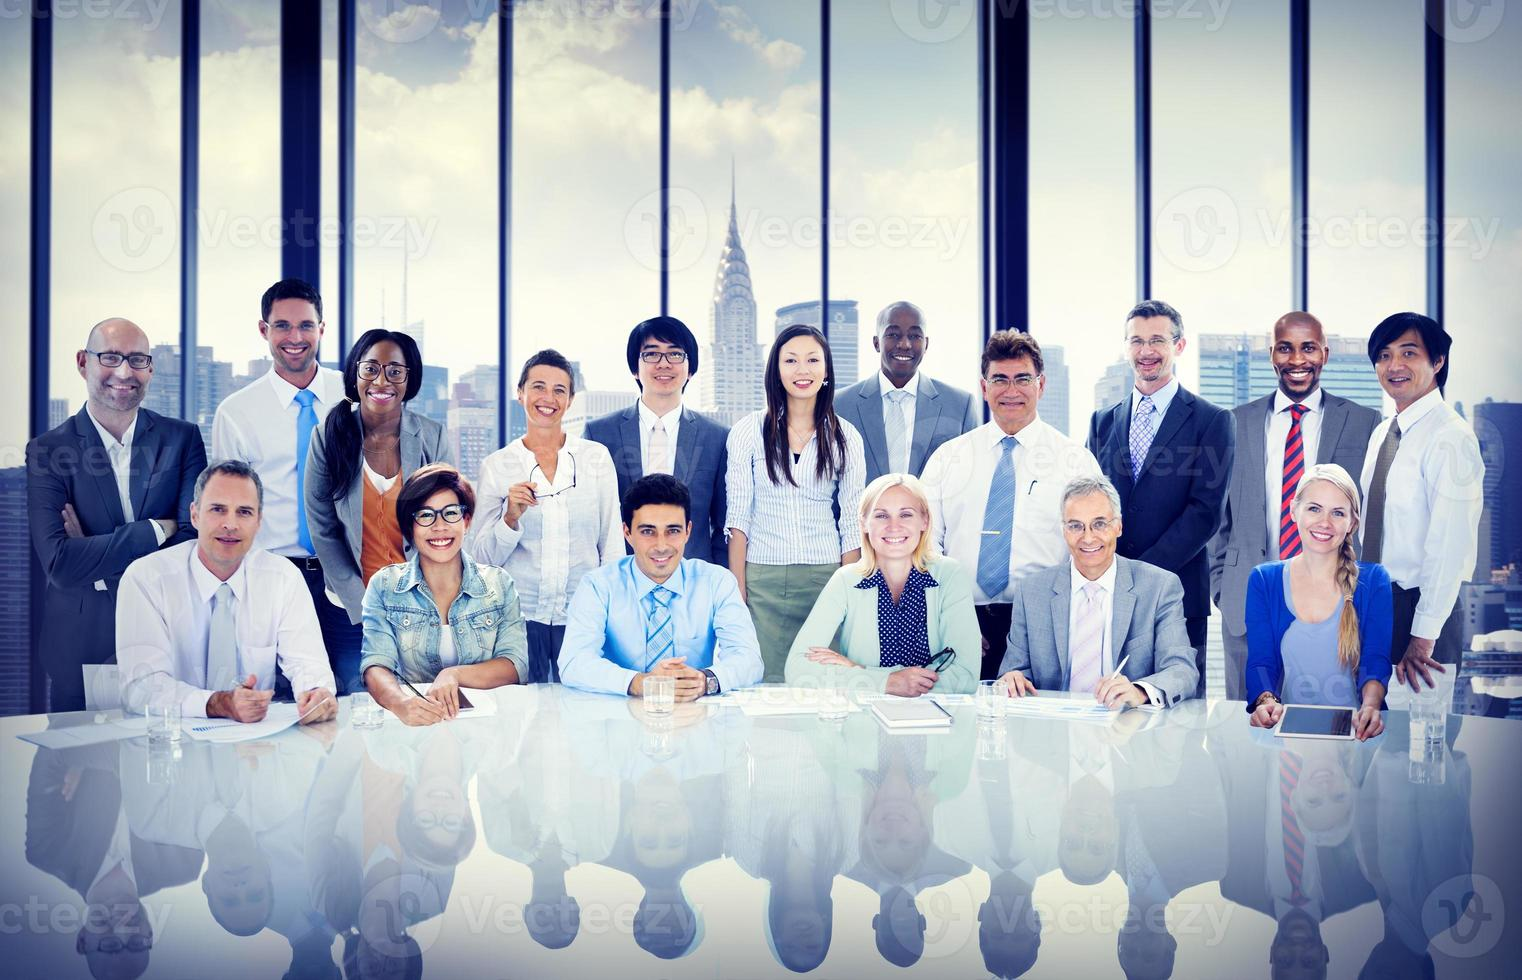 Business People Diversity Team Corporate Professional Office Con photo